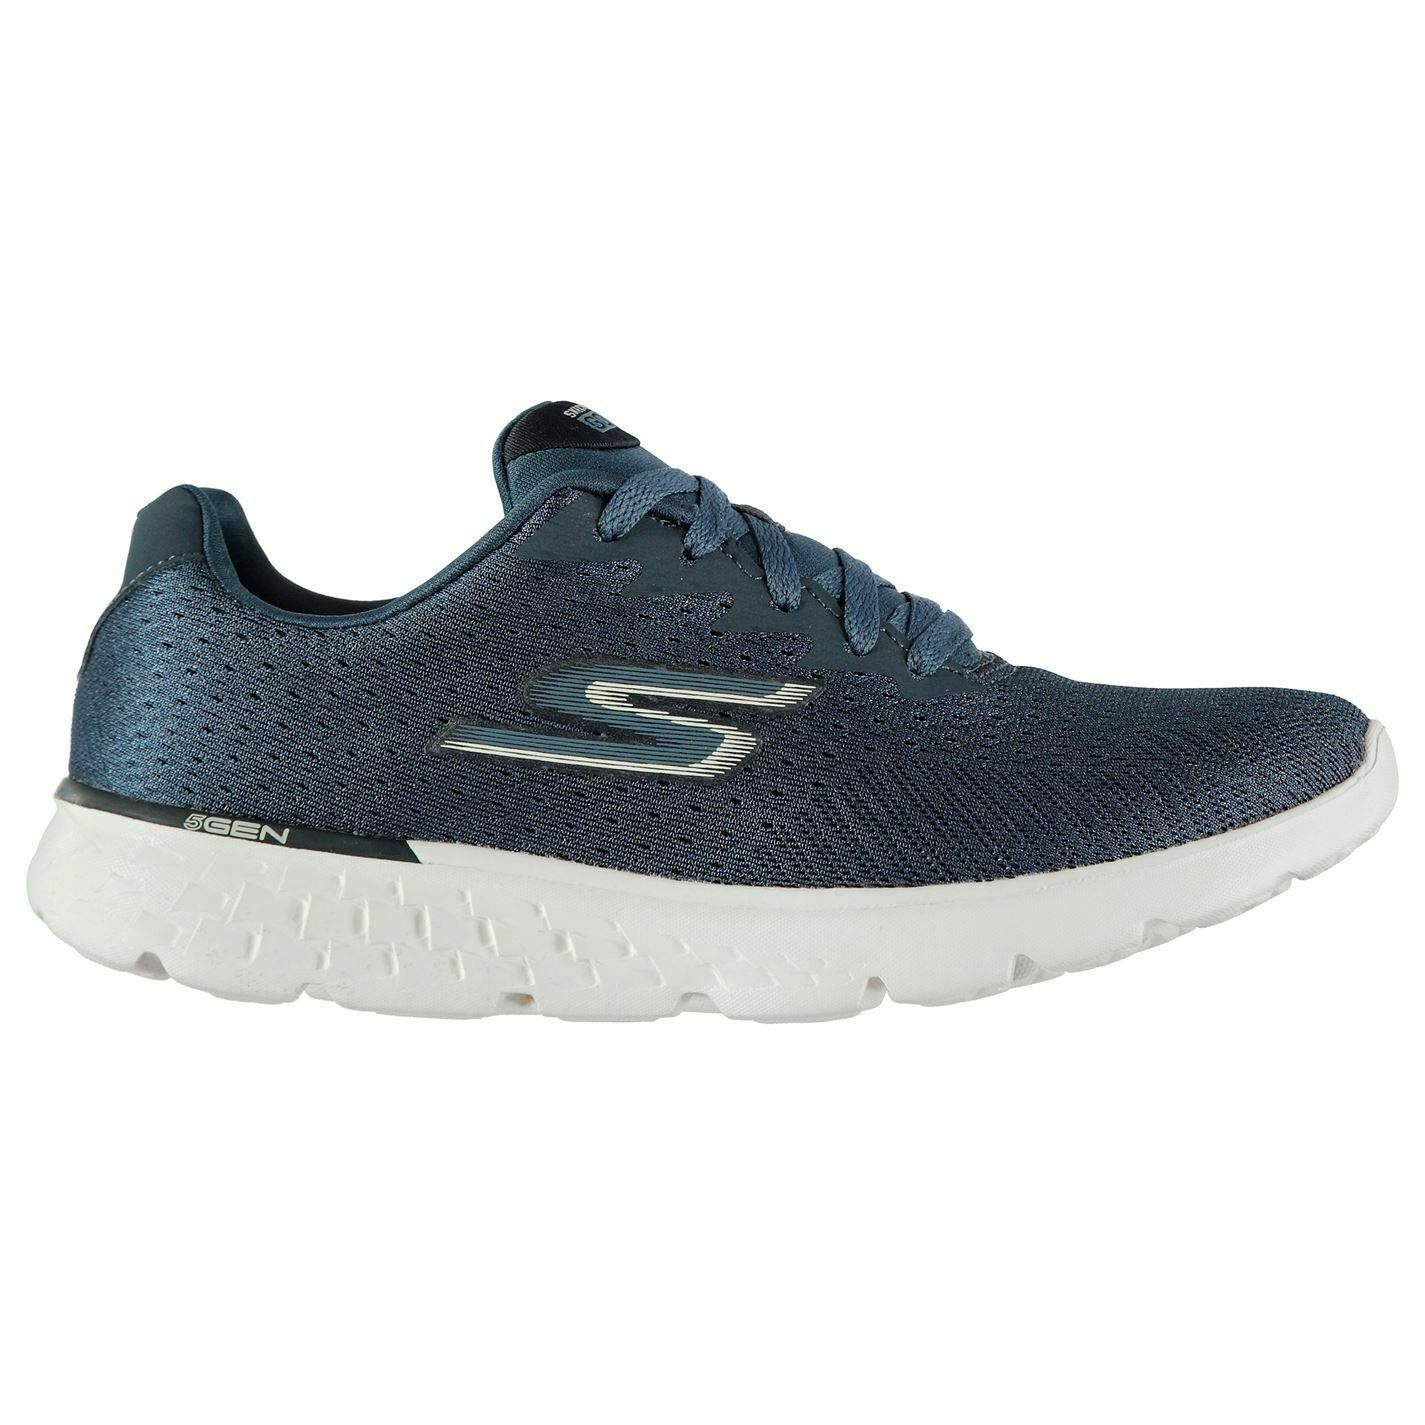 Skechers Womens Ladies Go Run 400 Trainers Running shoes Lace  Up Tongue  on sale 70% off